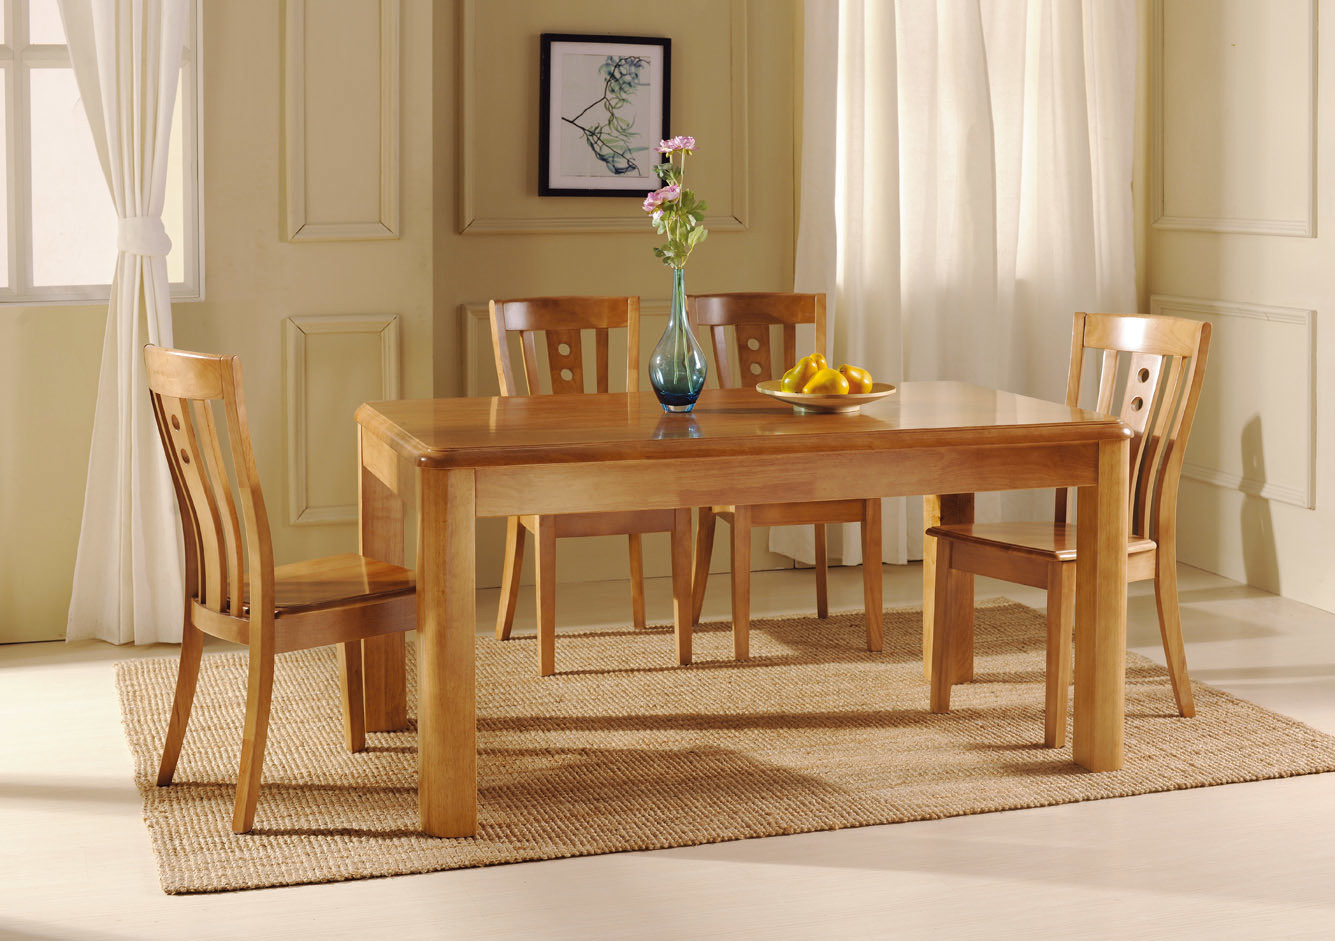 Dining Table / Dining Chair / Dining Room Furniture T938, C602